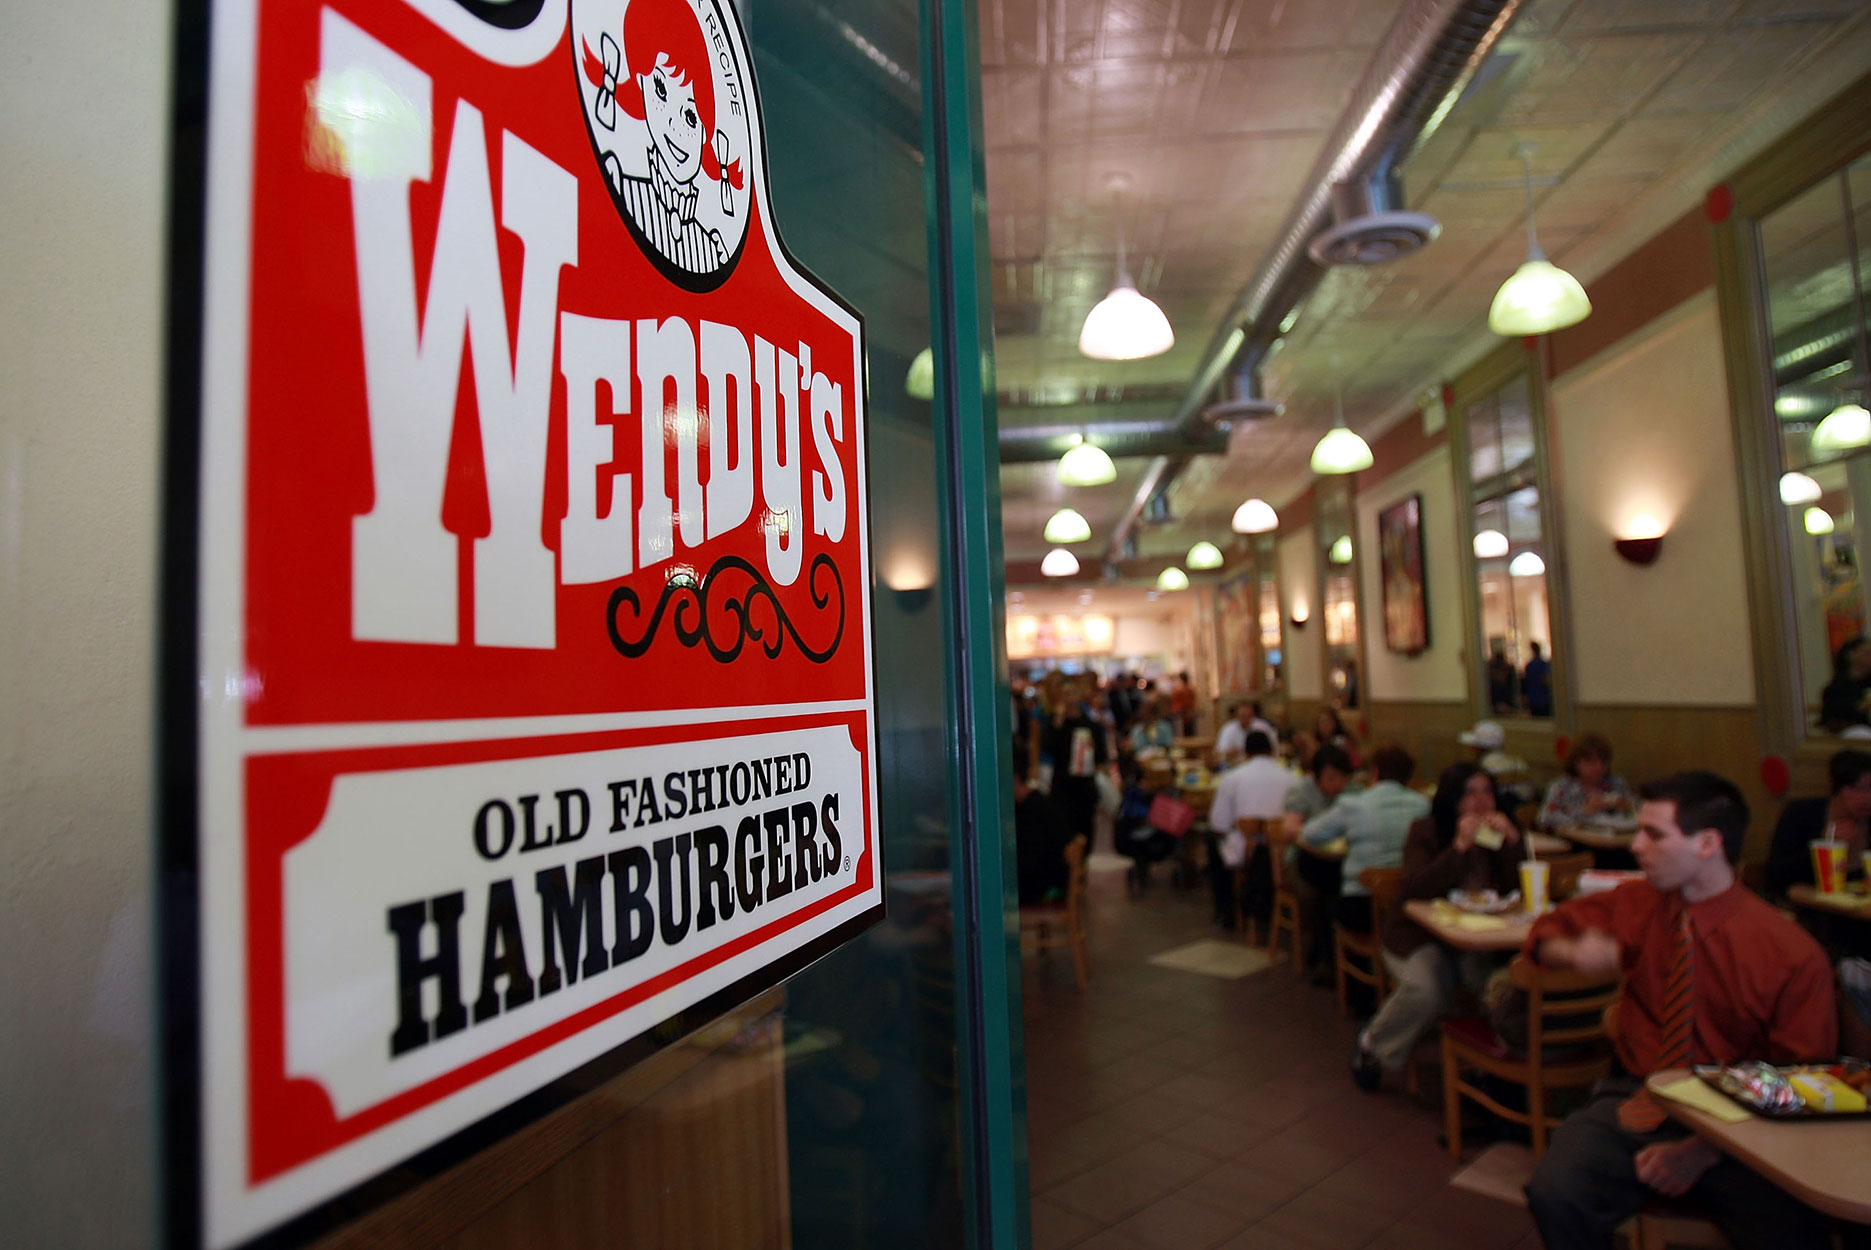 A Wendy's restaurant in New York City